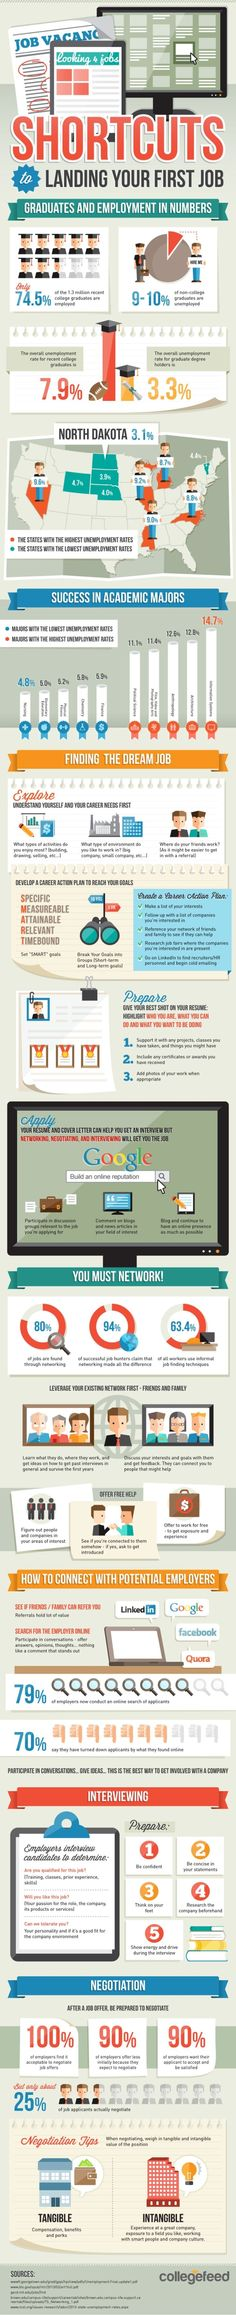 136 best Job Search Strategies images on Pinterest Career advice